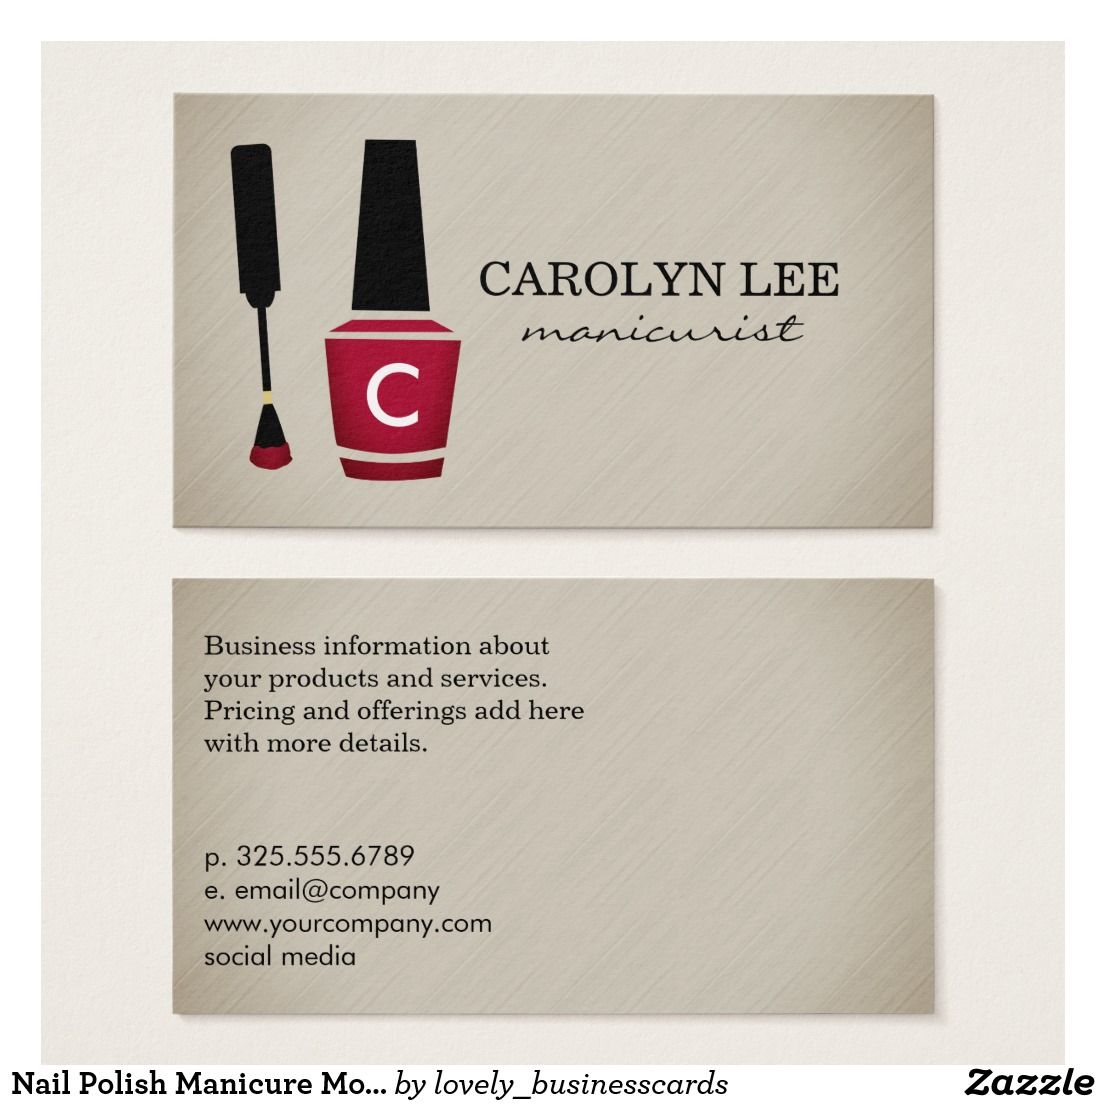 Nail Polish Manicure Monogram Business Card | Business cards ...